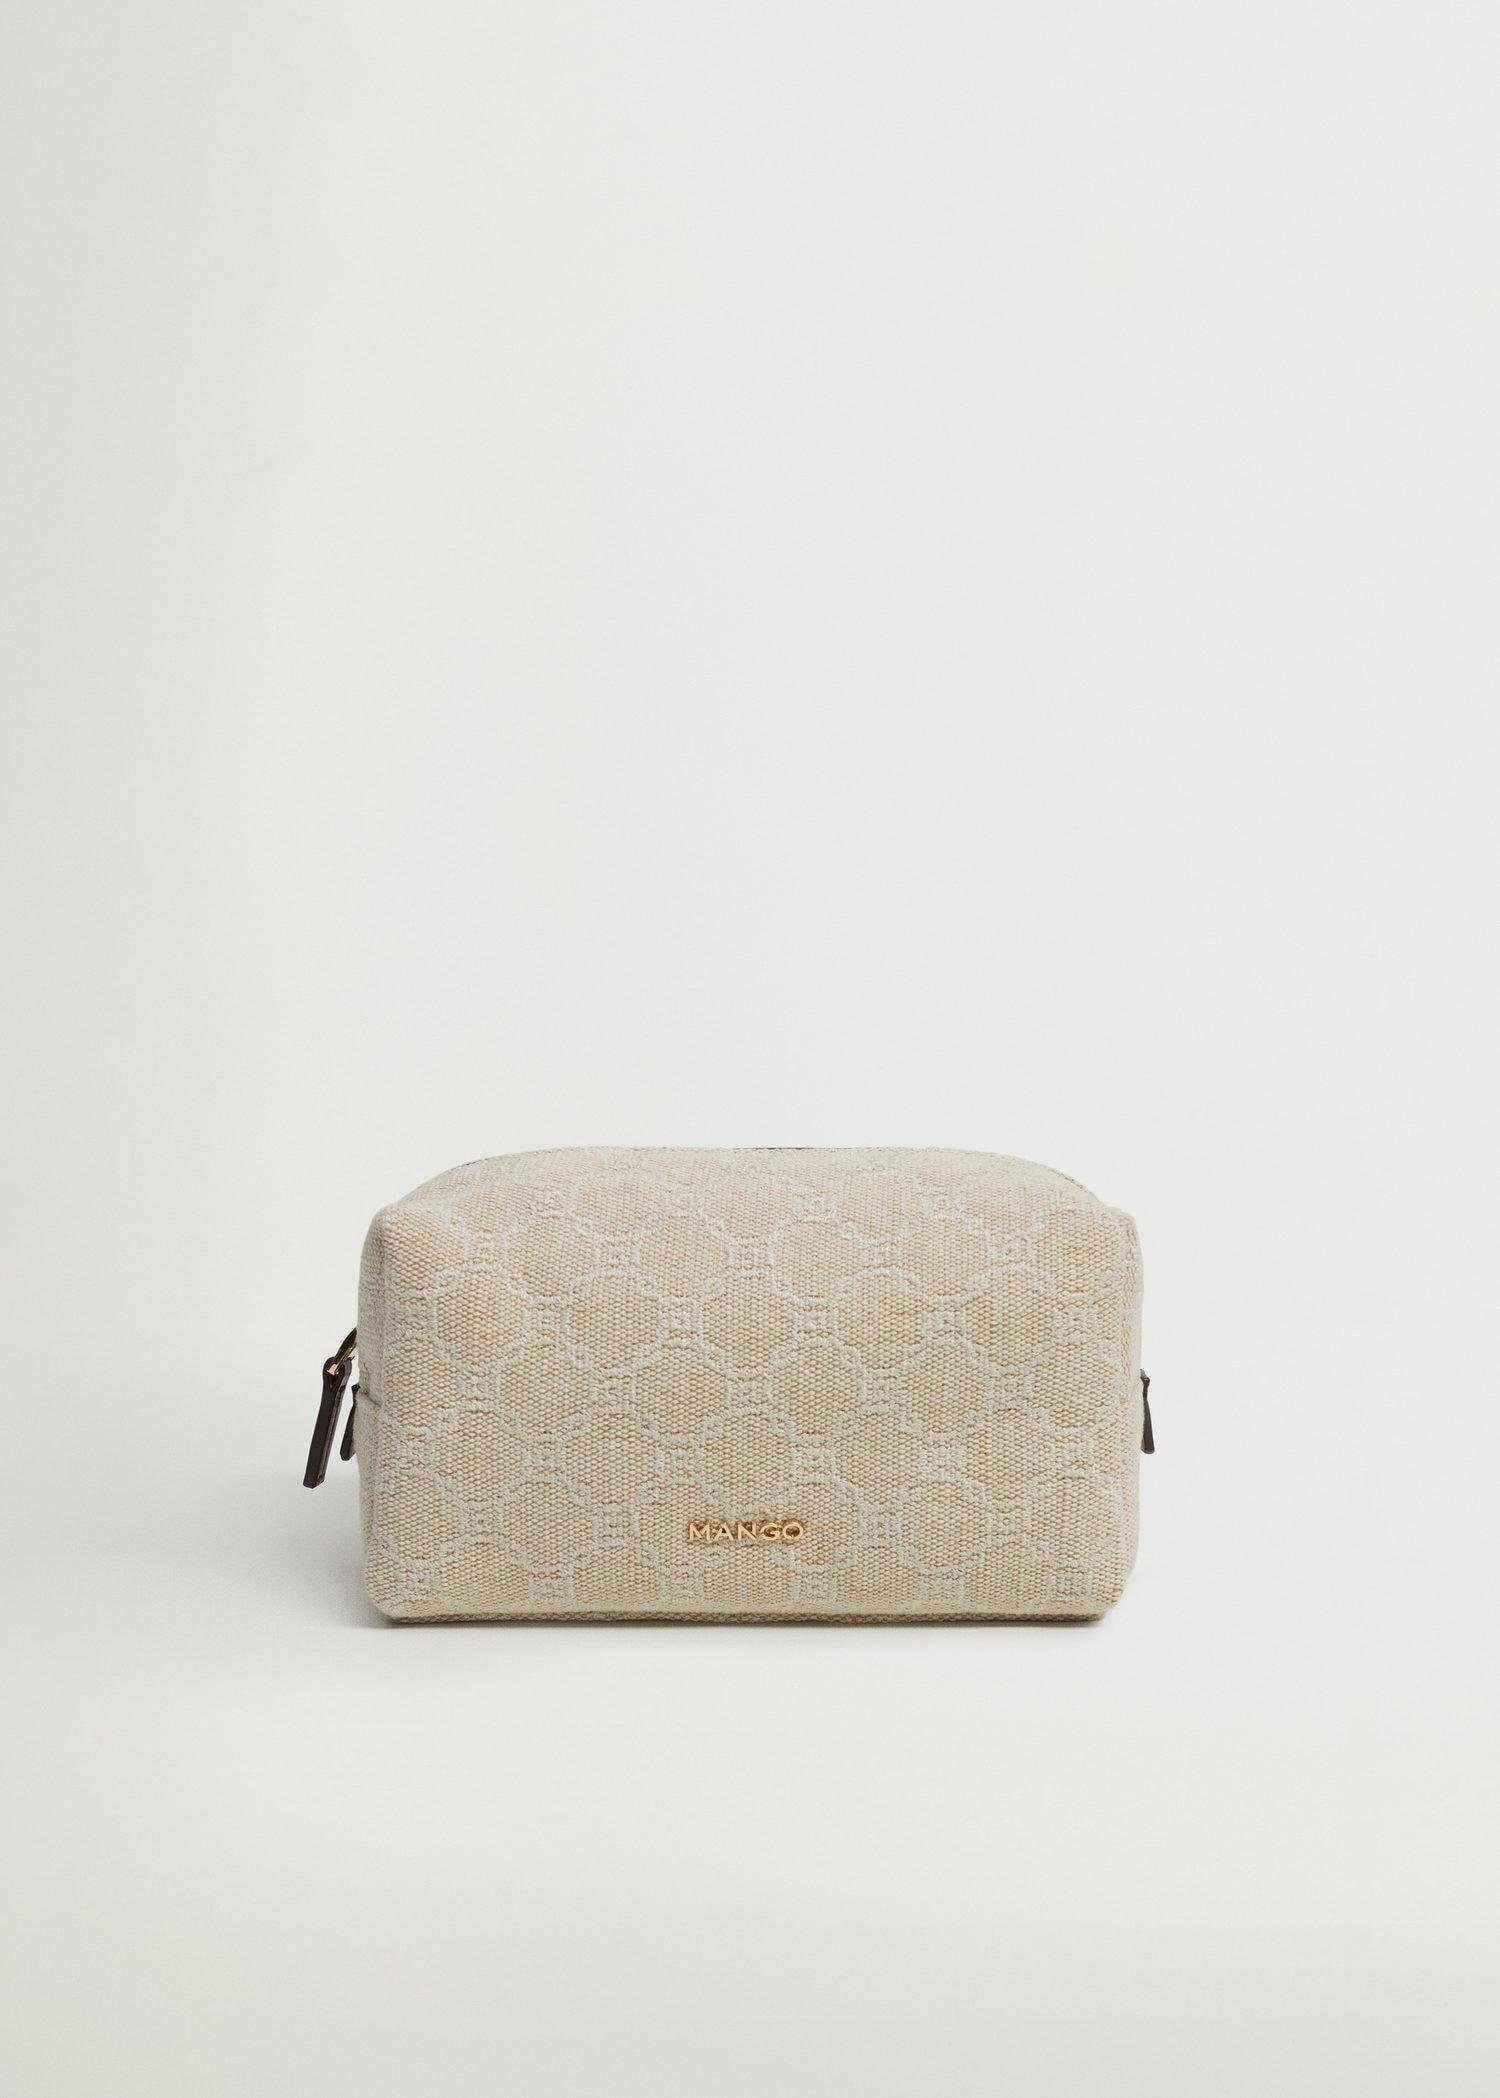 Embroidered jute cosmetic bag